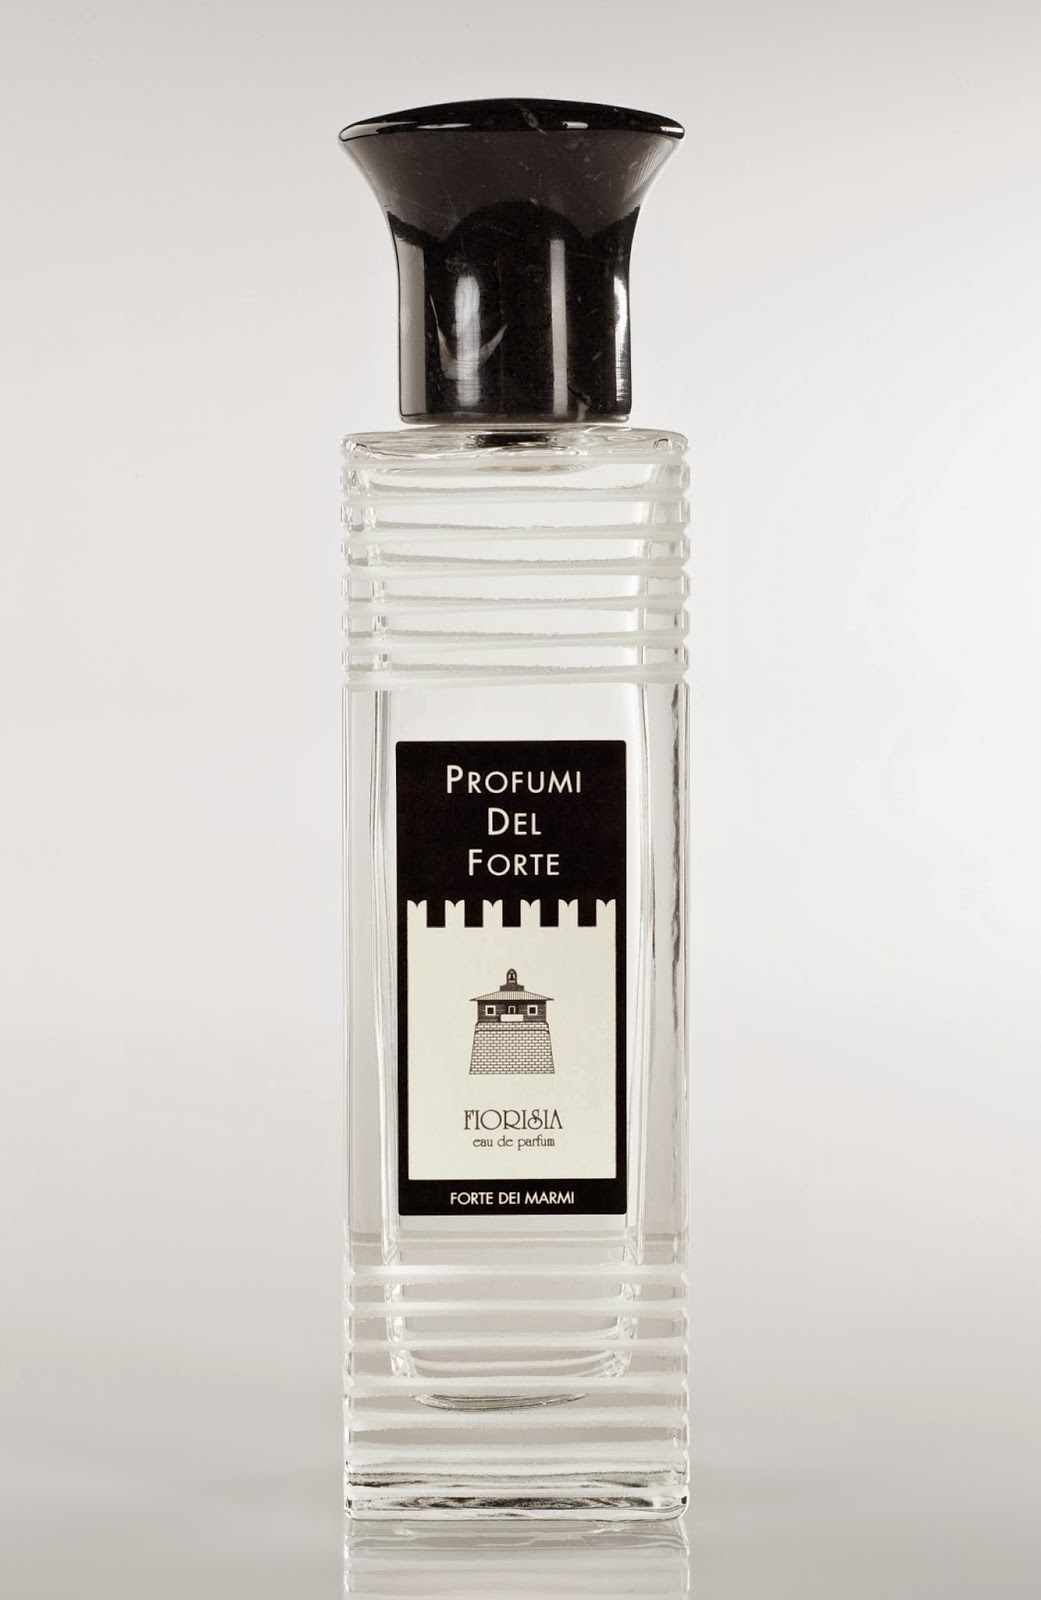 FIORISIA by PROFUMI DEL FORTE 5ml Travel Spray Perfume MANDARIN BANANA TIARE*